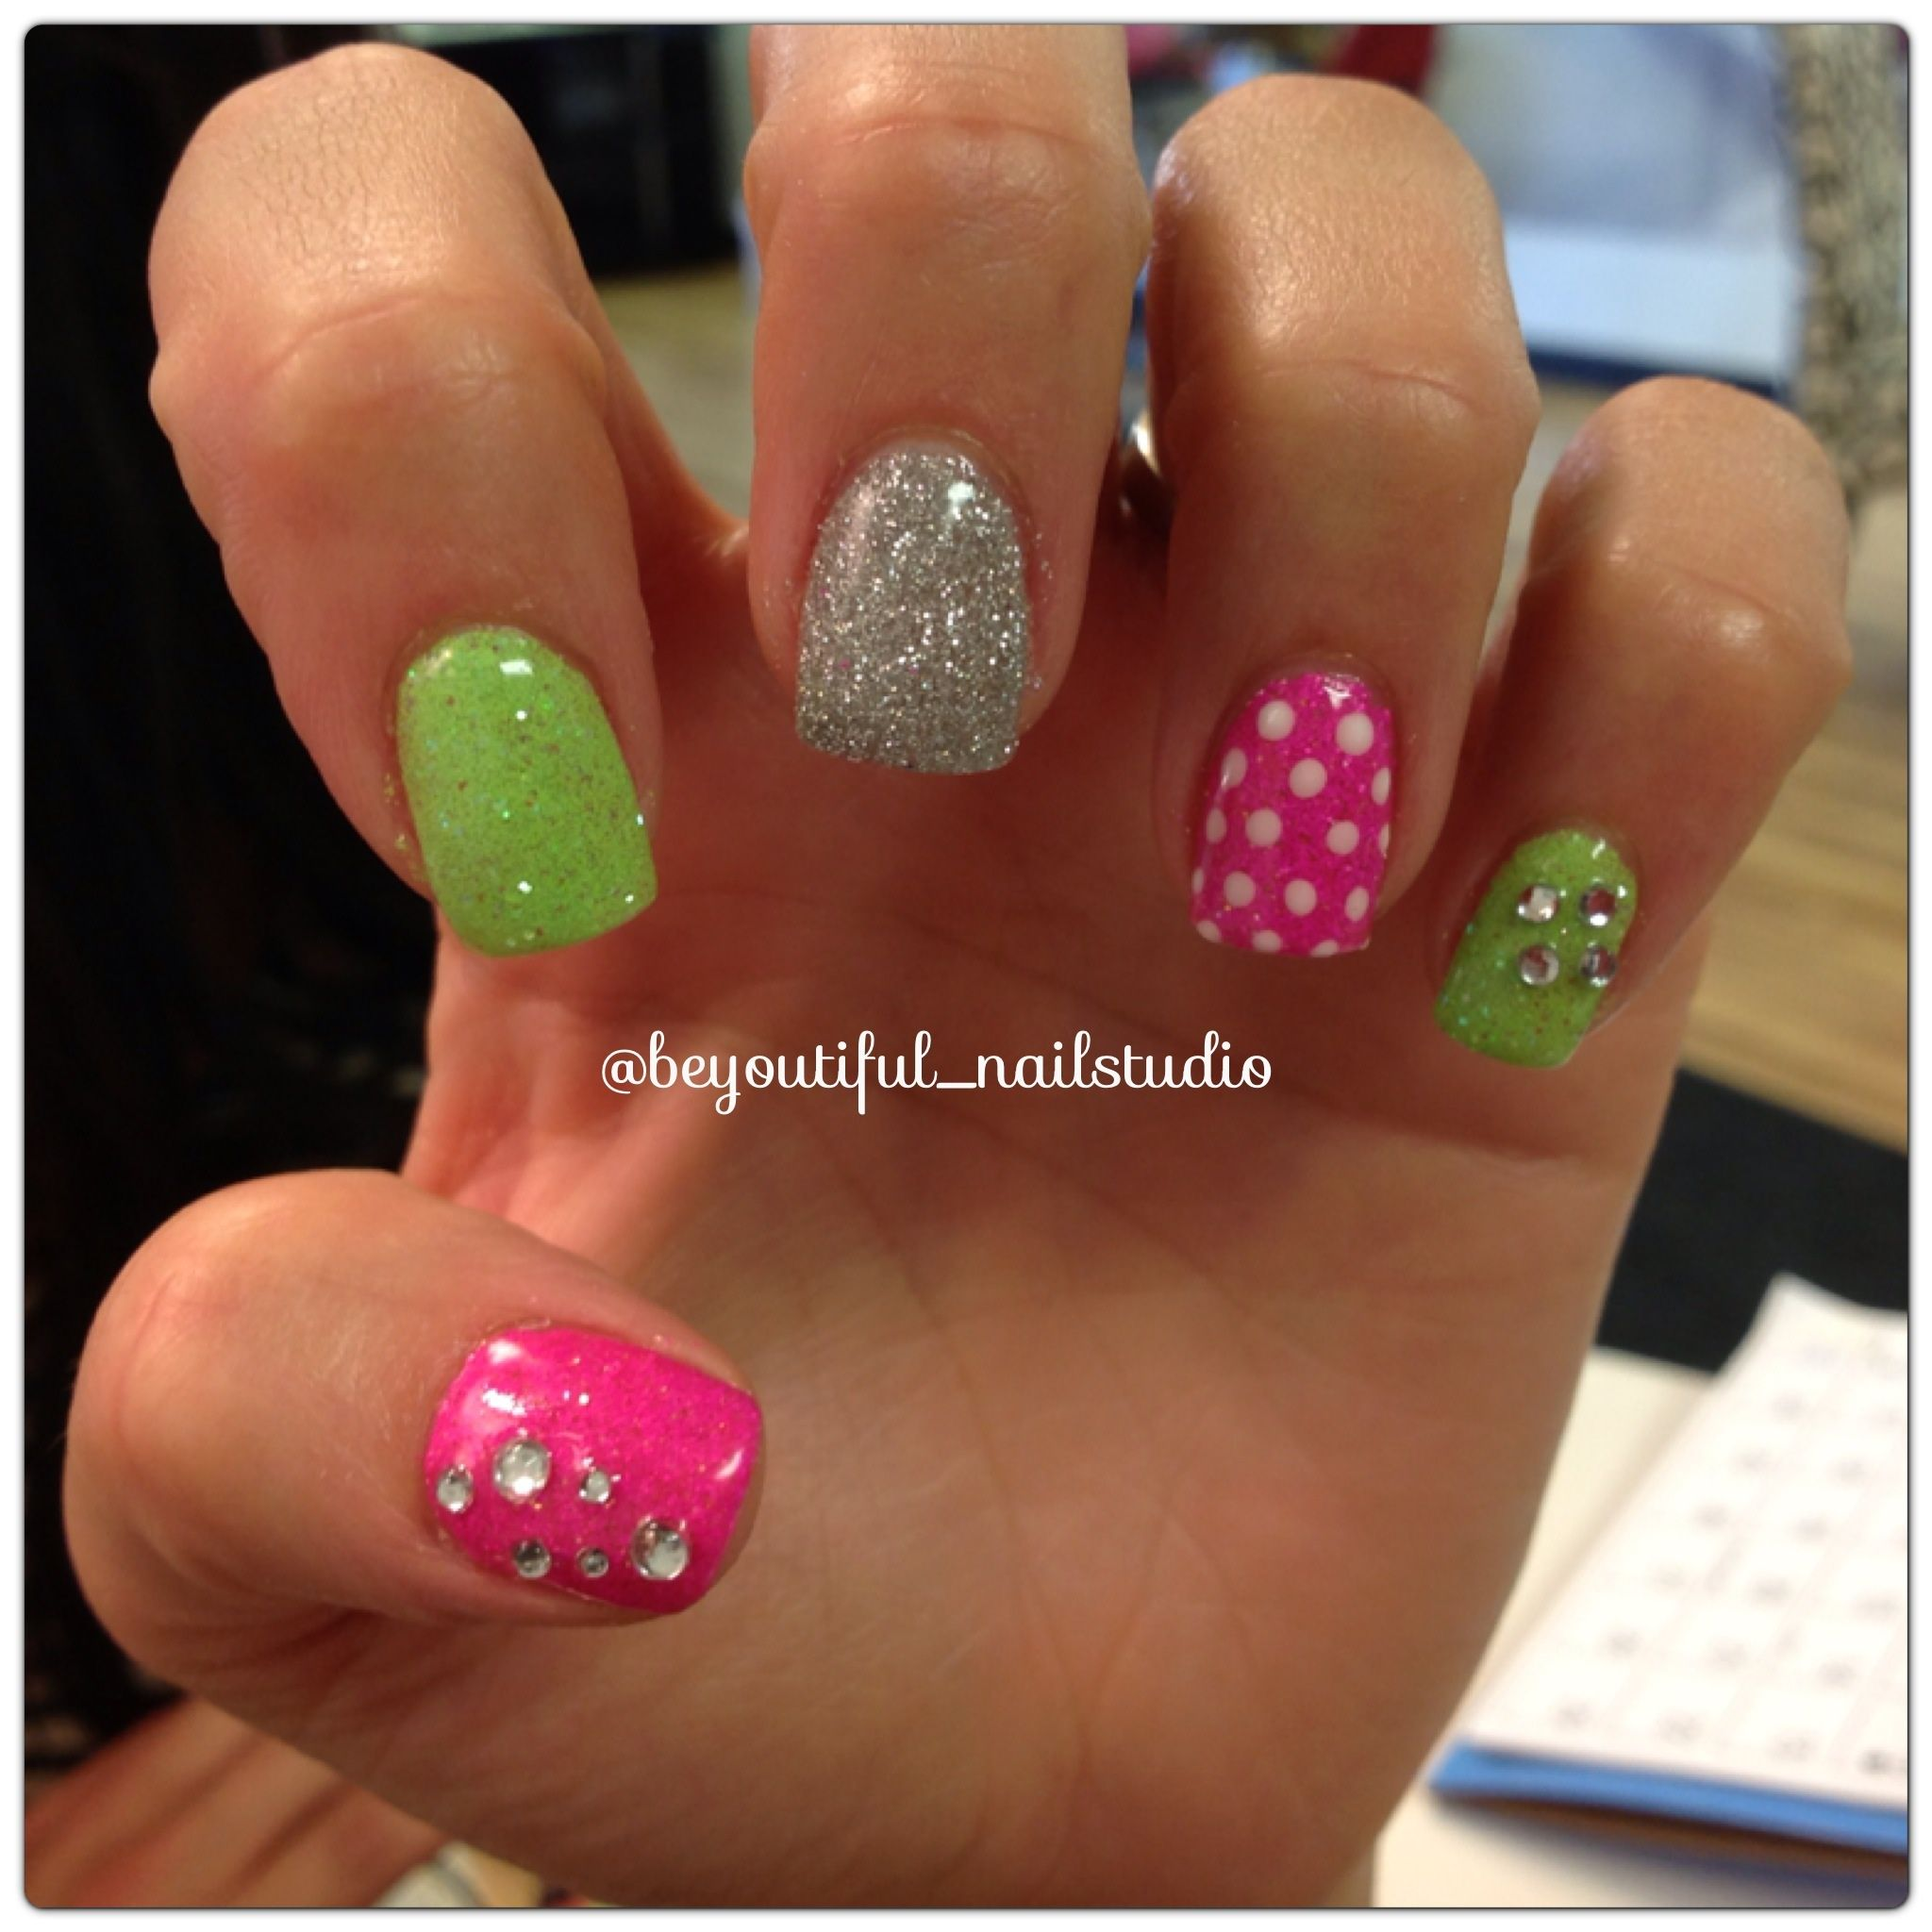 Pin By Suzanne Pham On My Style Green Nail Designs Green Nails Christmas Nails Easy